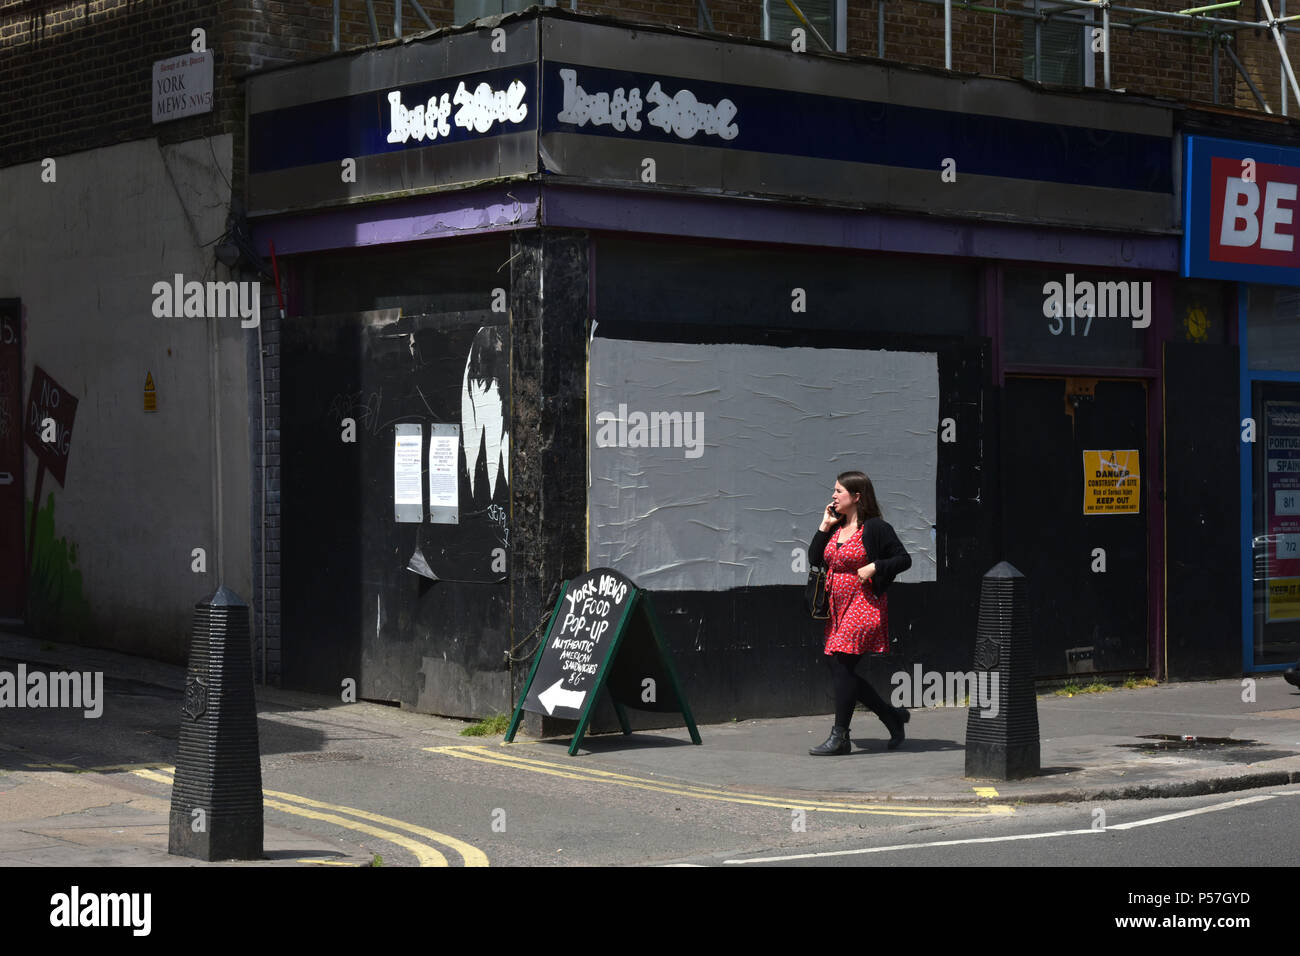 A closed independent shop located on Kentish Town Road, North London, where shops are closing as the high street goes into decline. - Stock Image